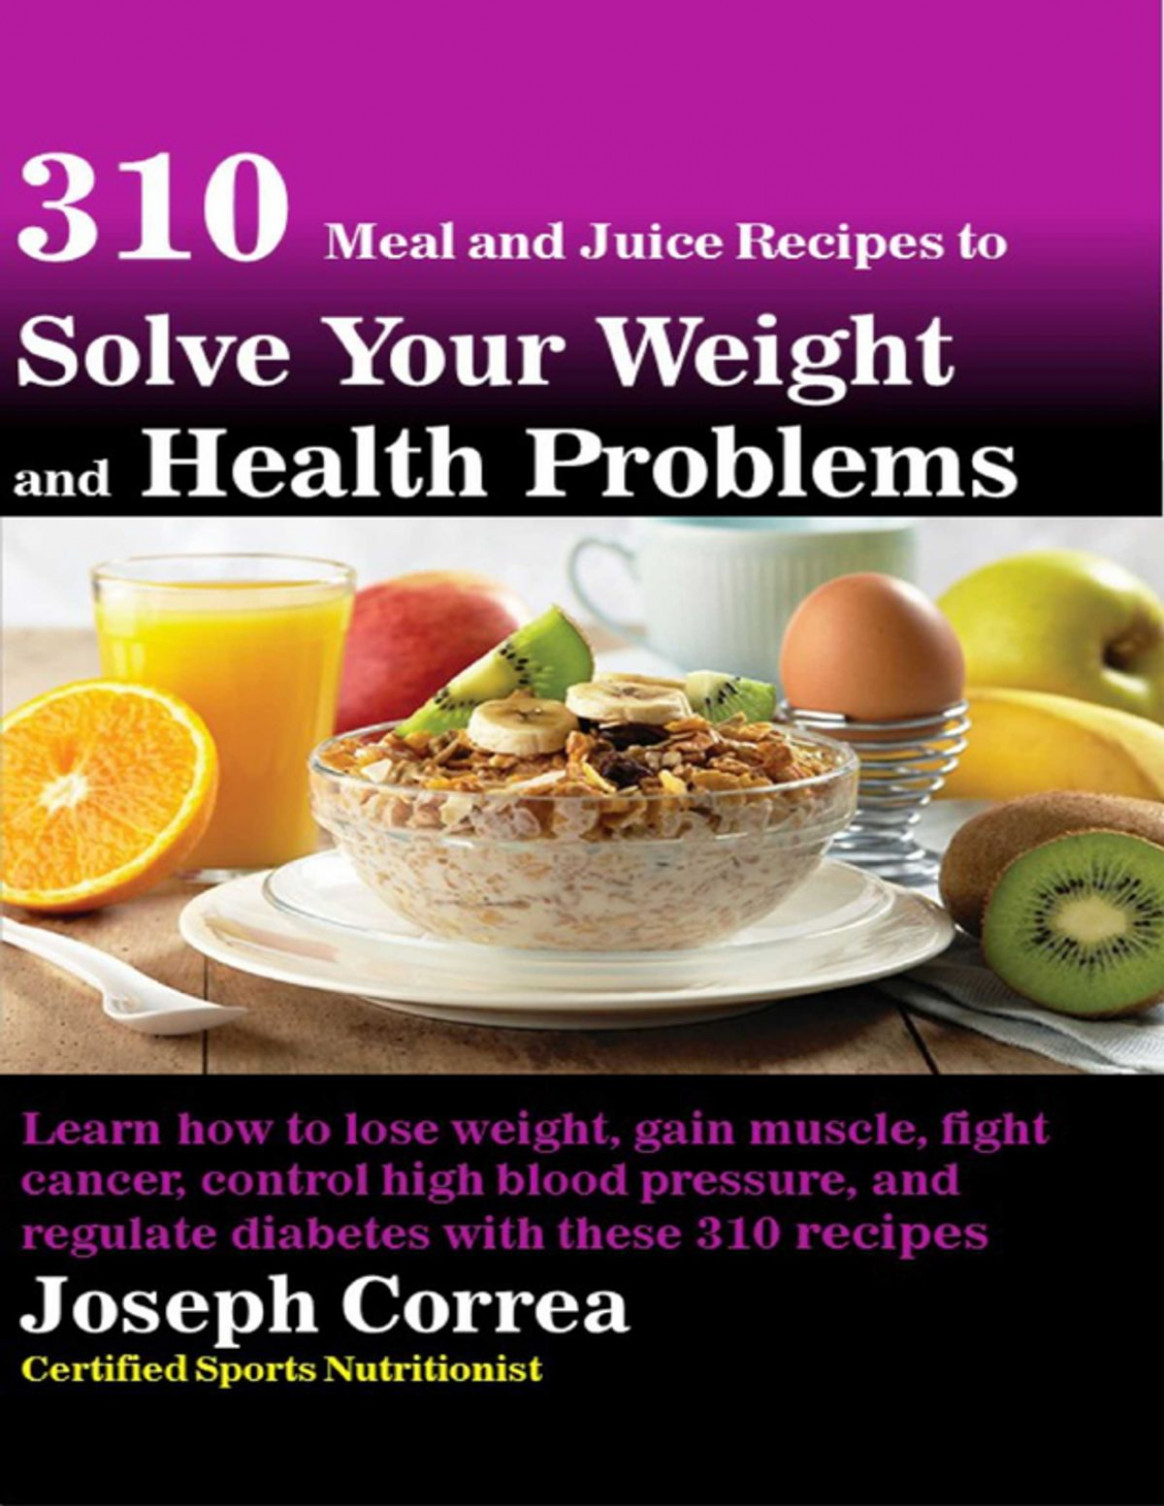 13 Meal and Juice Recipes to Solve Your Weight and Health Problems Learn  How to Lose Weight, Gain Muscle, Fight Cancer, Control High Blood Pressure,  ..